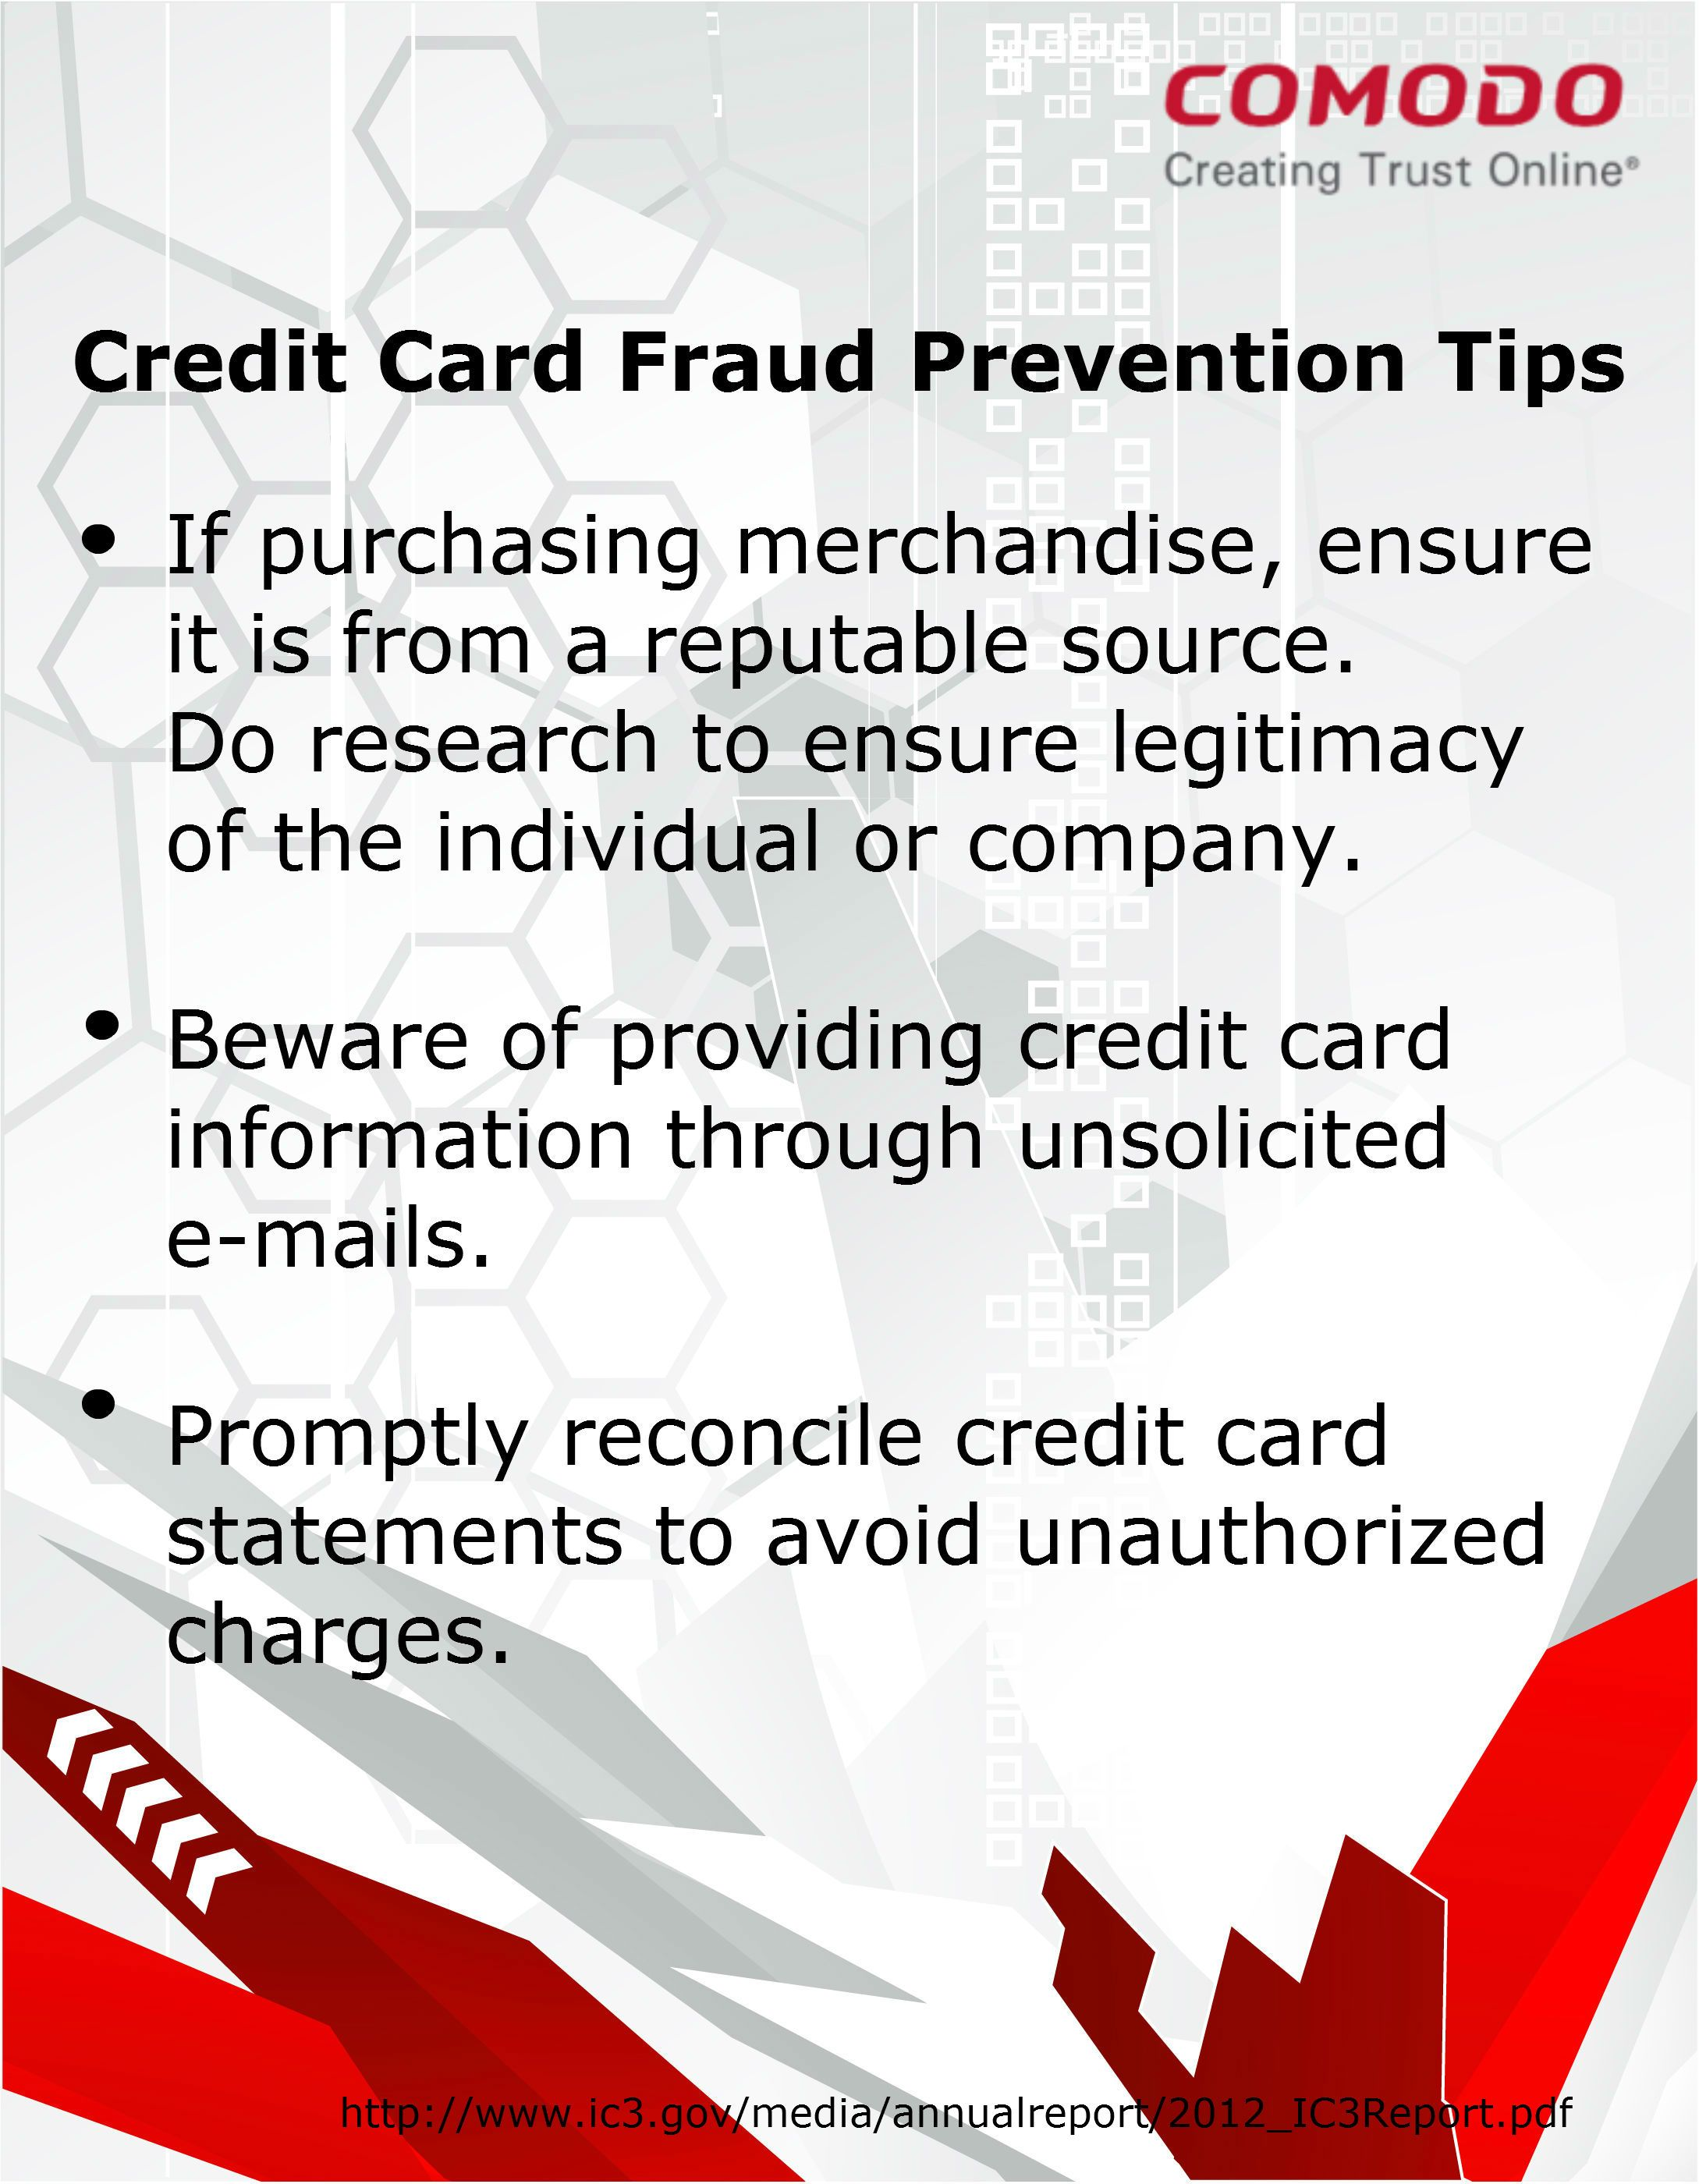 credit card scams via email